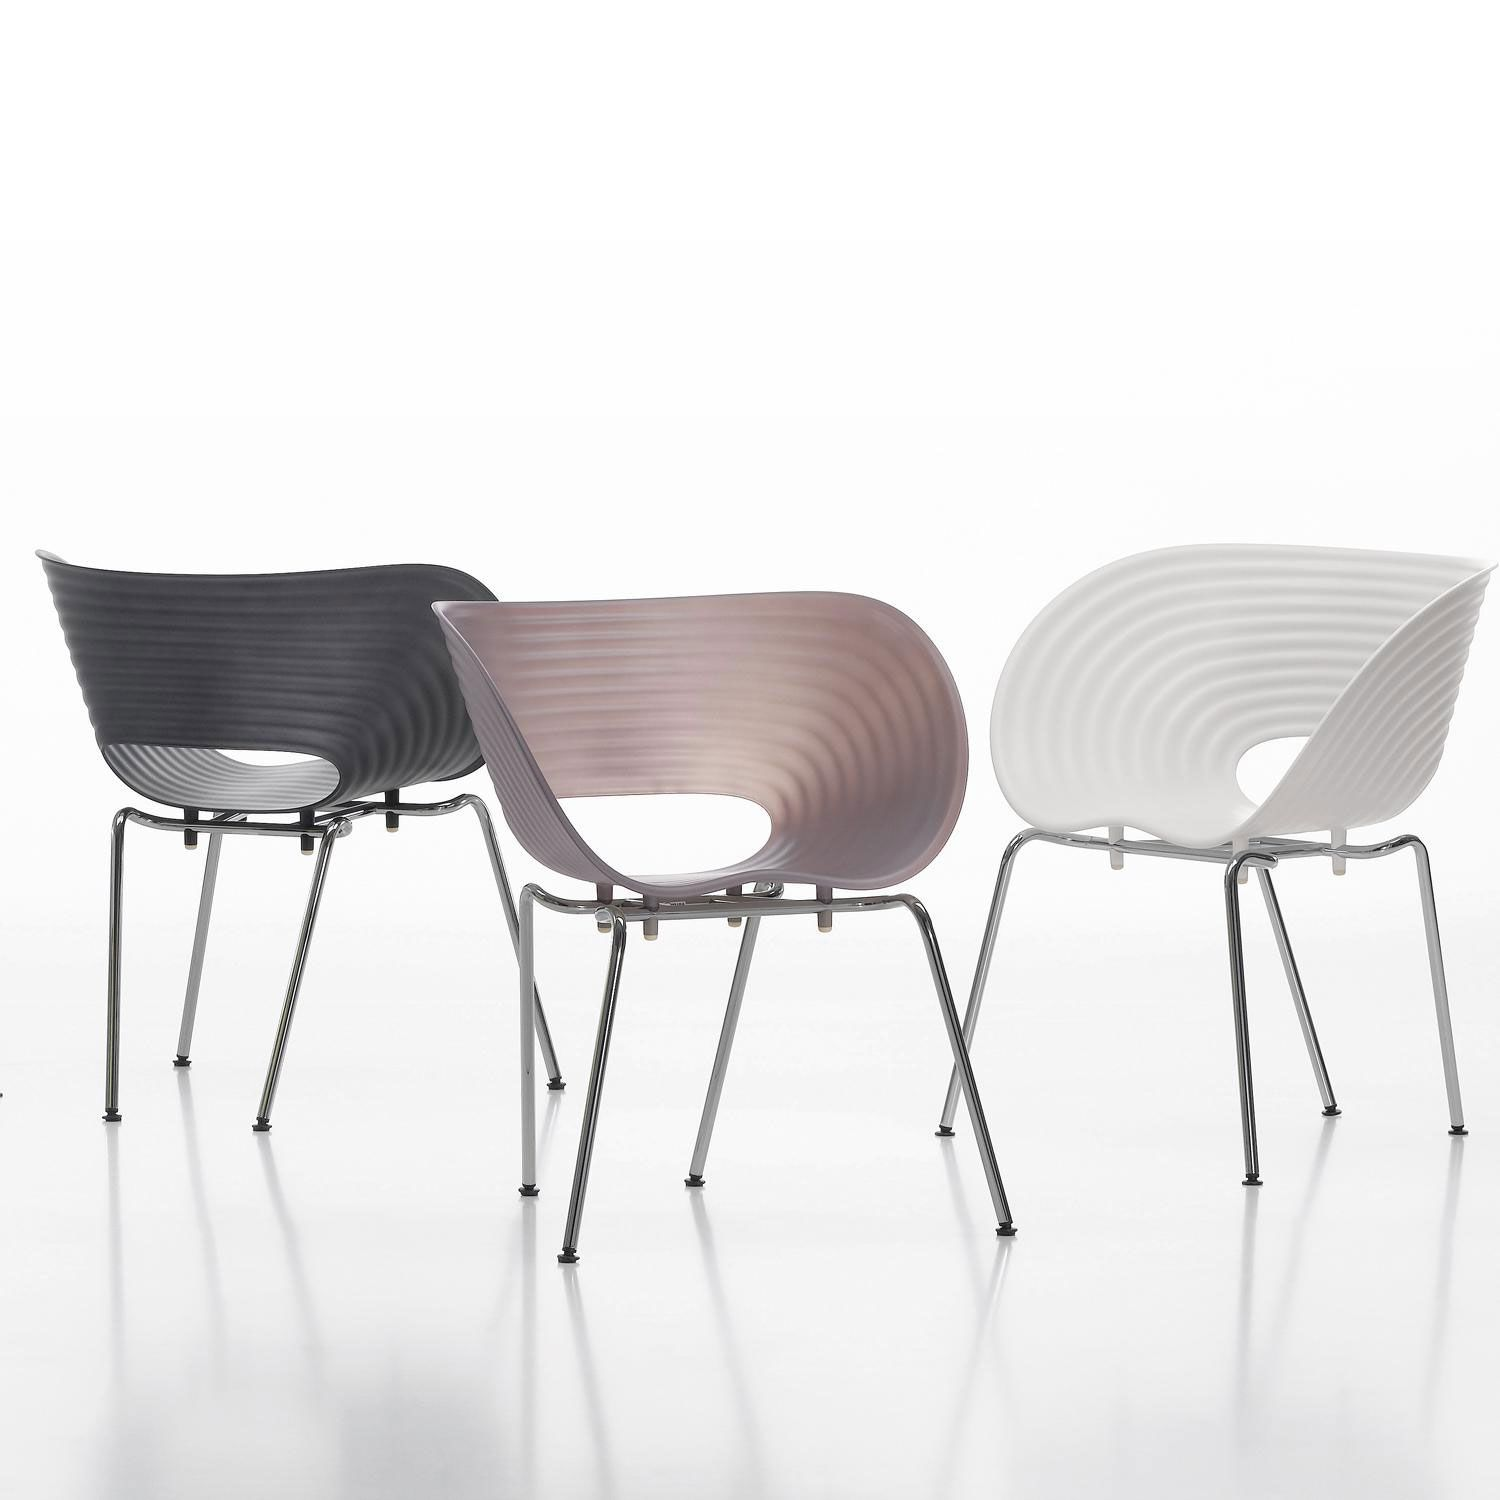 Ron Arad Tom Vac Chair I Take One In Every Colour Gorgeous Want Mobeldesign Stuhl Design Vitra Stuhl